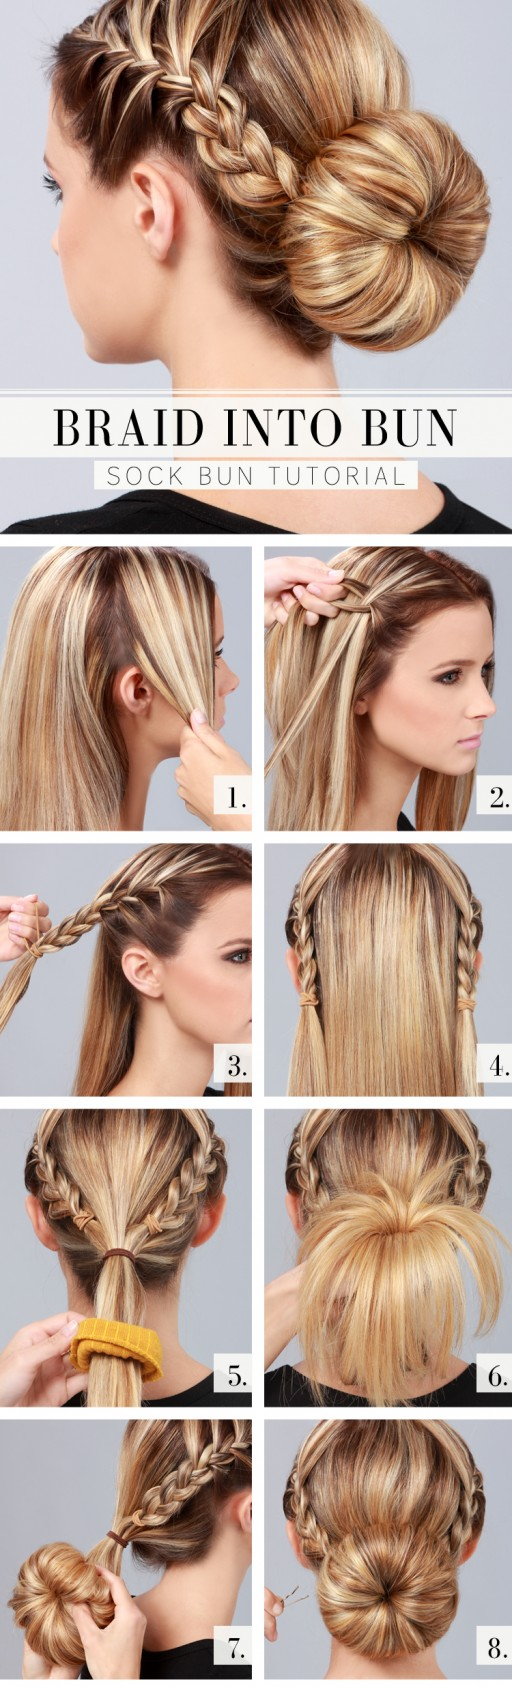 How to make gorgeous braid into bun hair style step by step DIY tutorial instructions